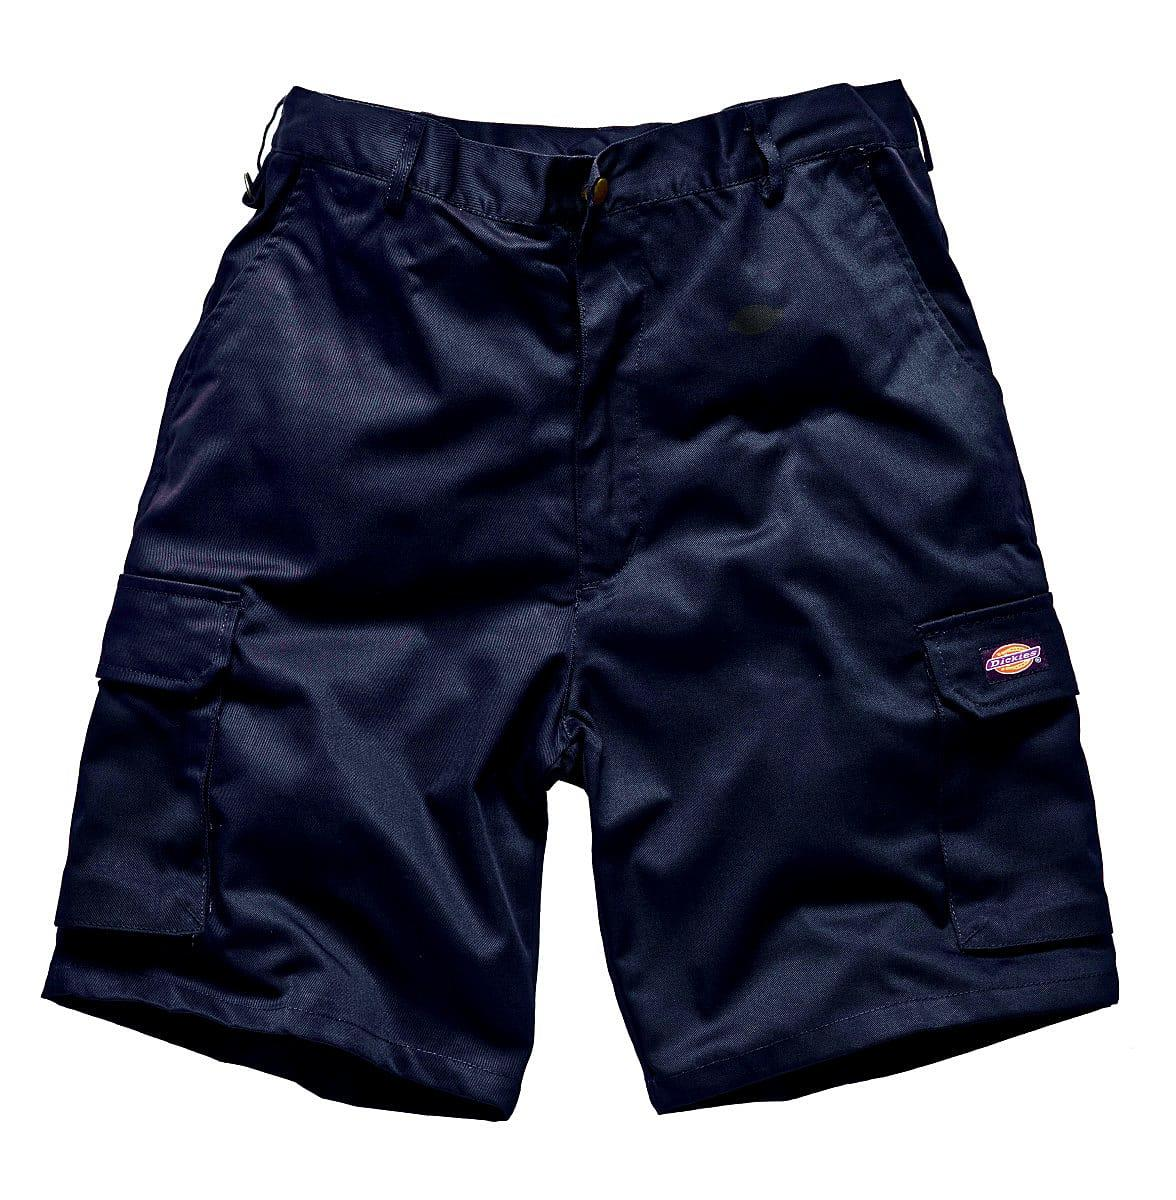 Dickies Redhawk Cargo Shorts in Navy Blue (Product Code: WD834)